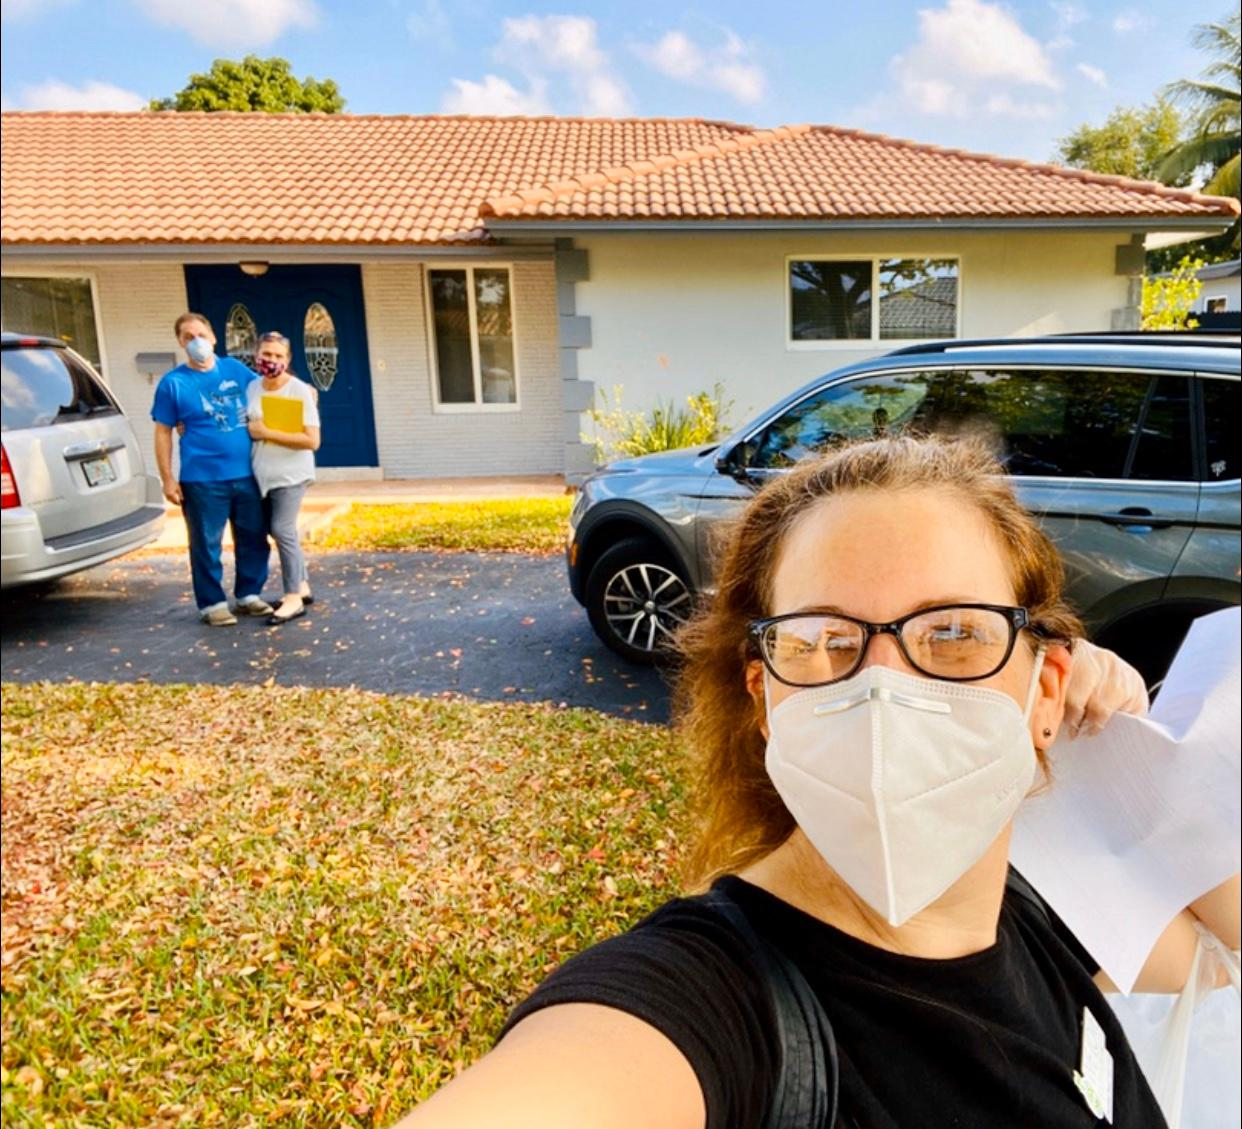 Green Realty realtors selling homes during the Covid-19 Pandemic.